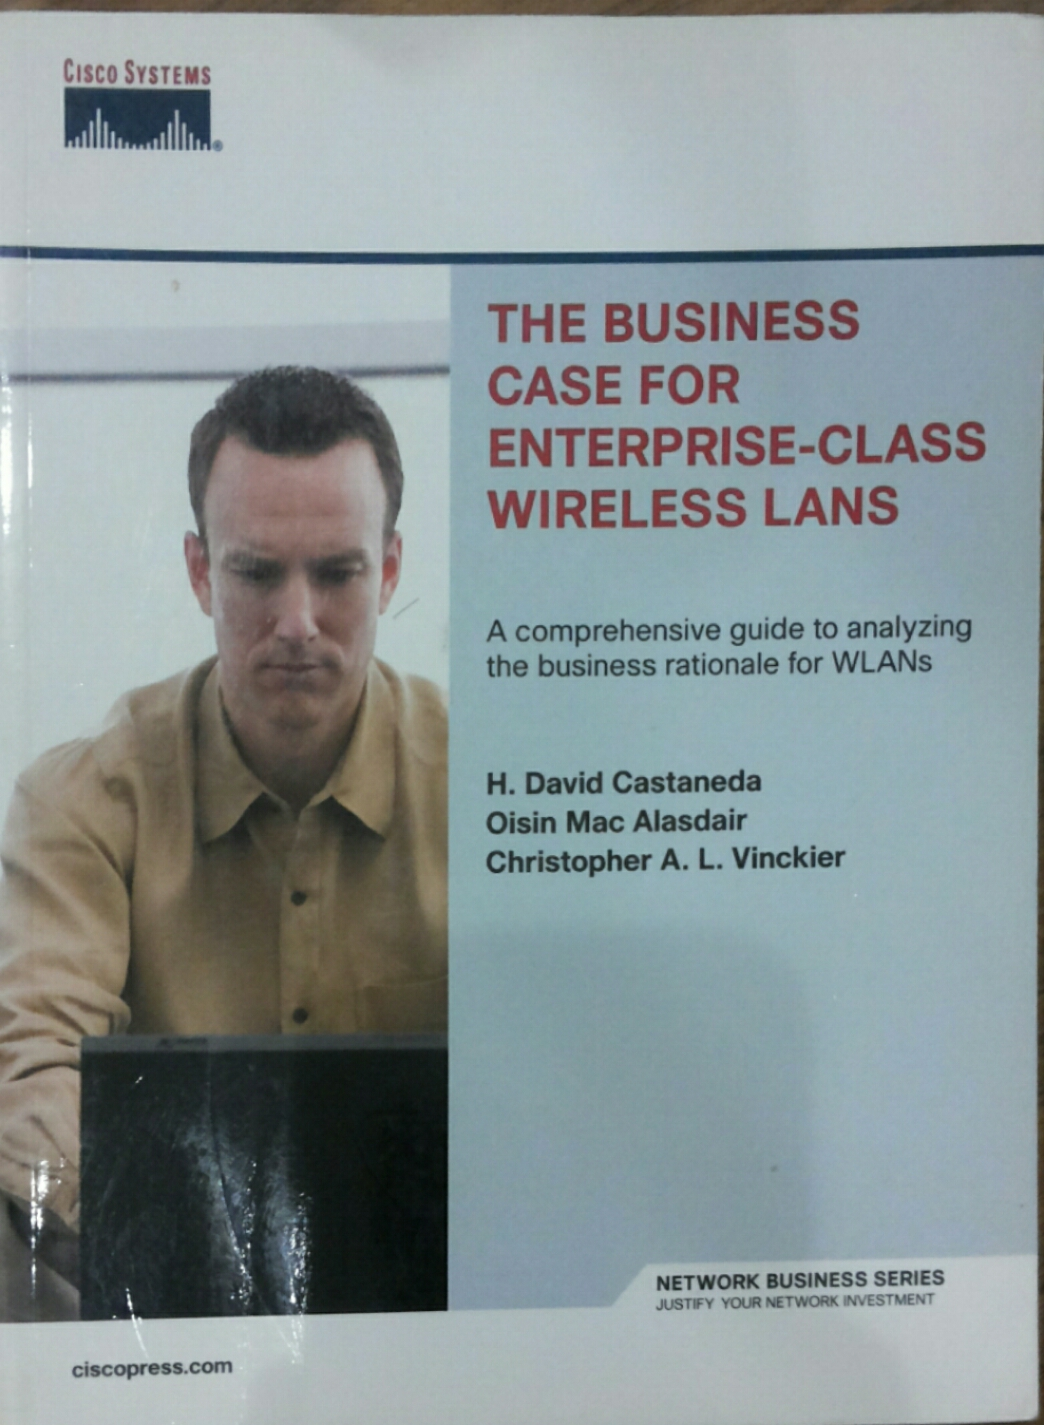 The Business Case for Enterprise-Class Wireless Lans